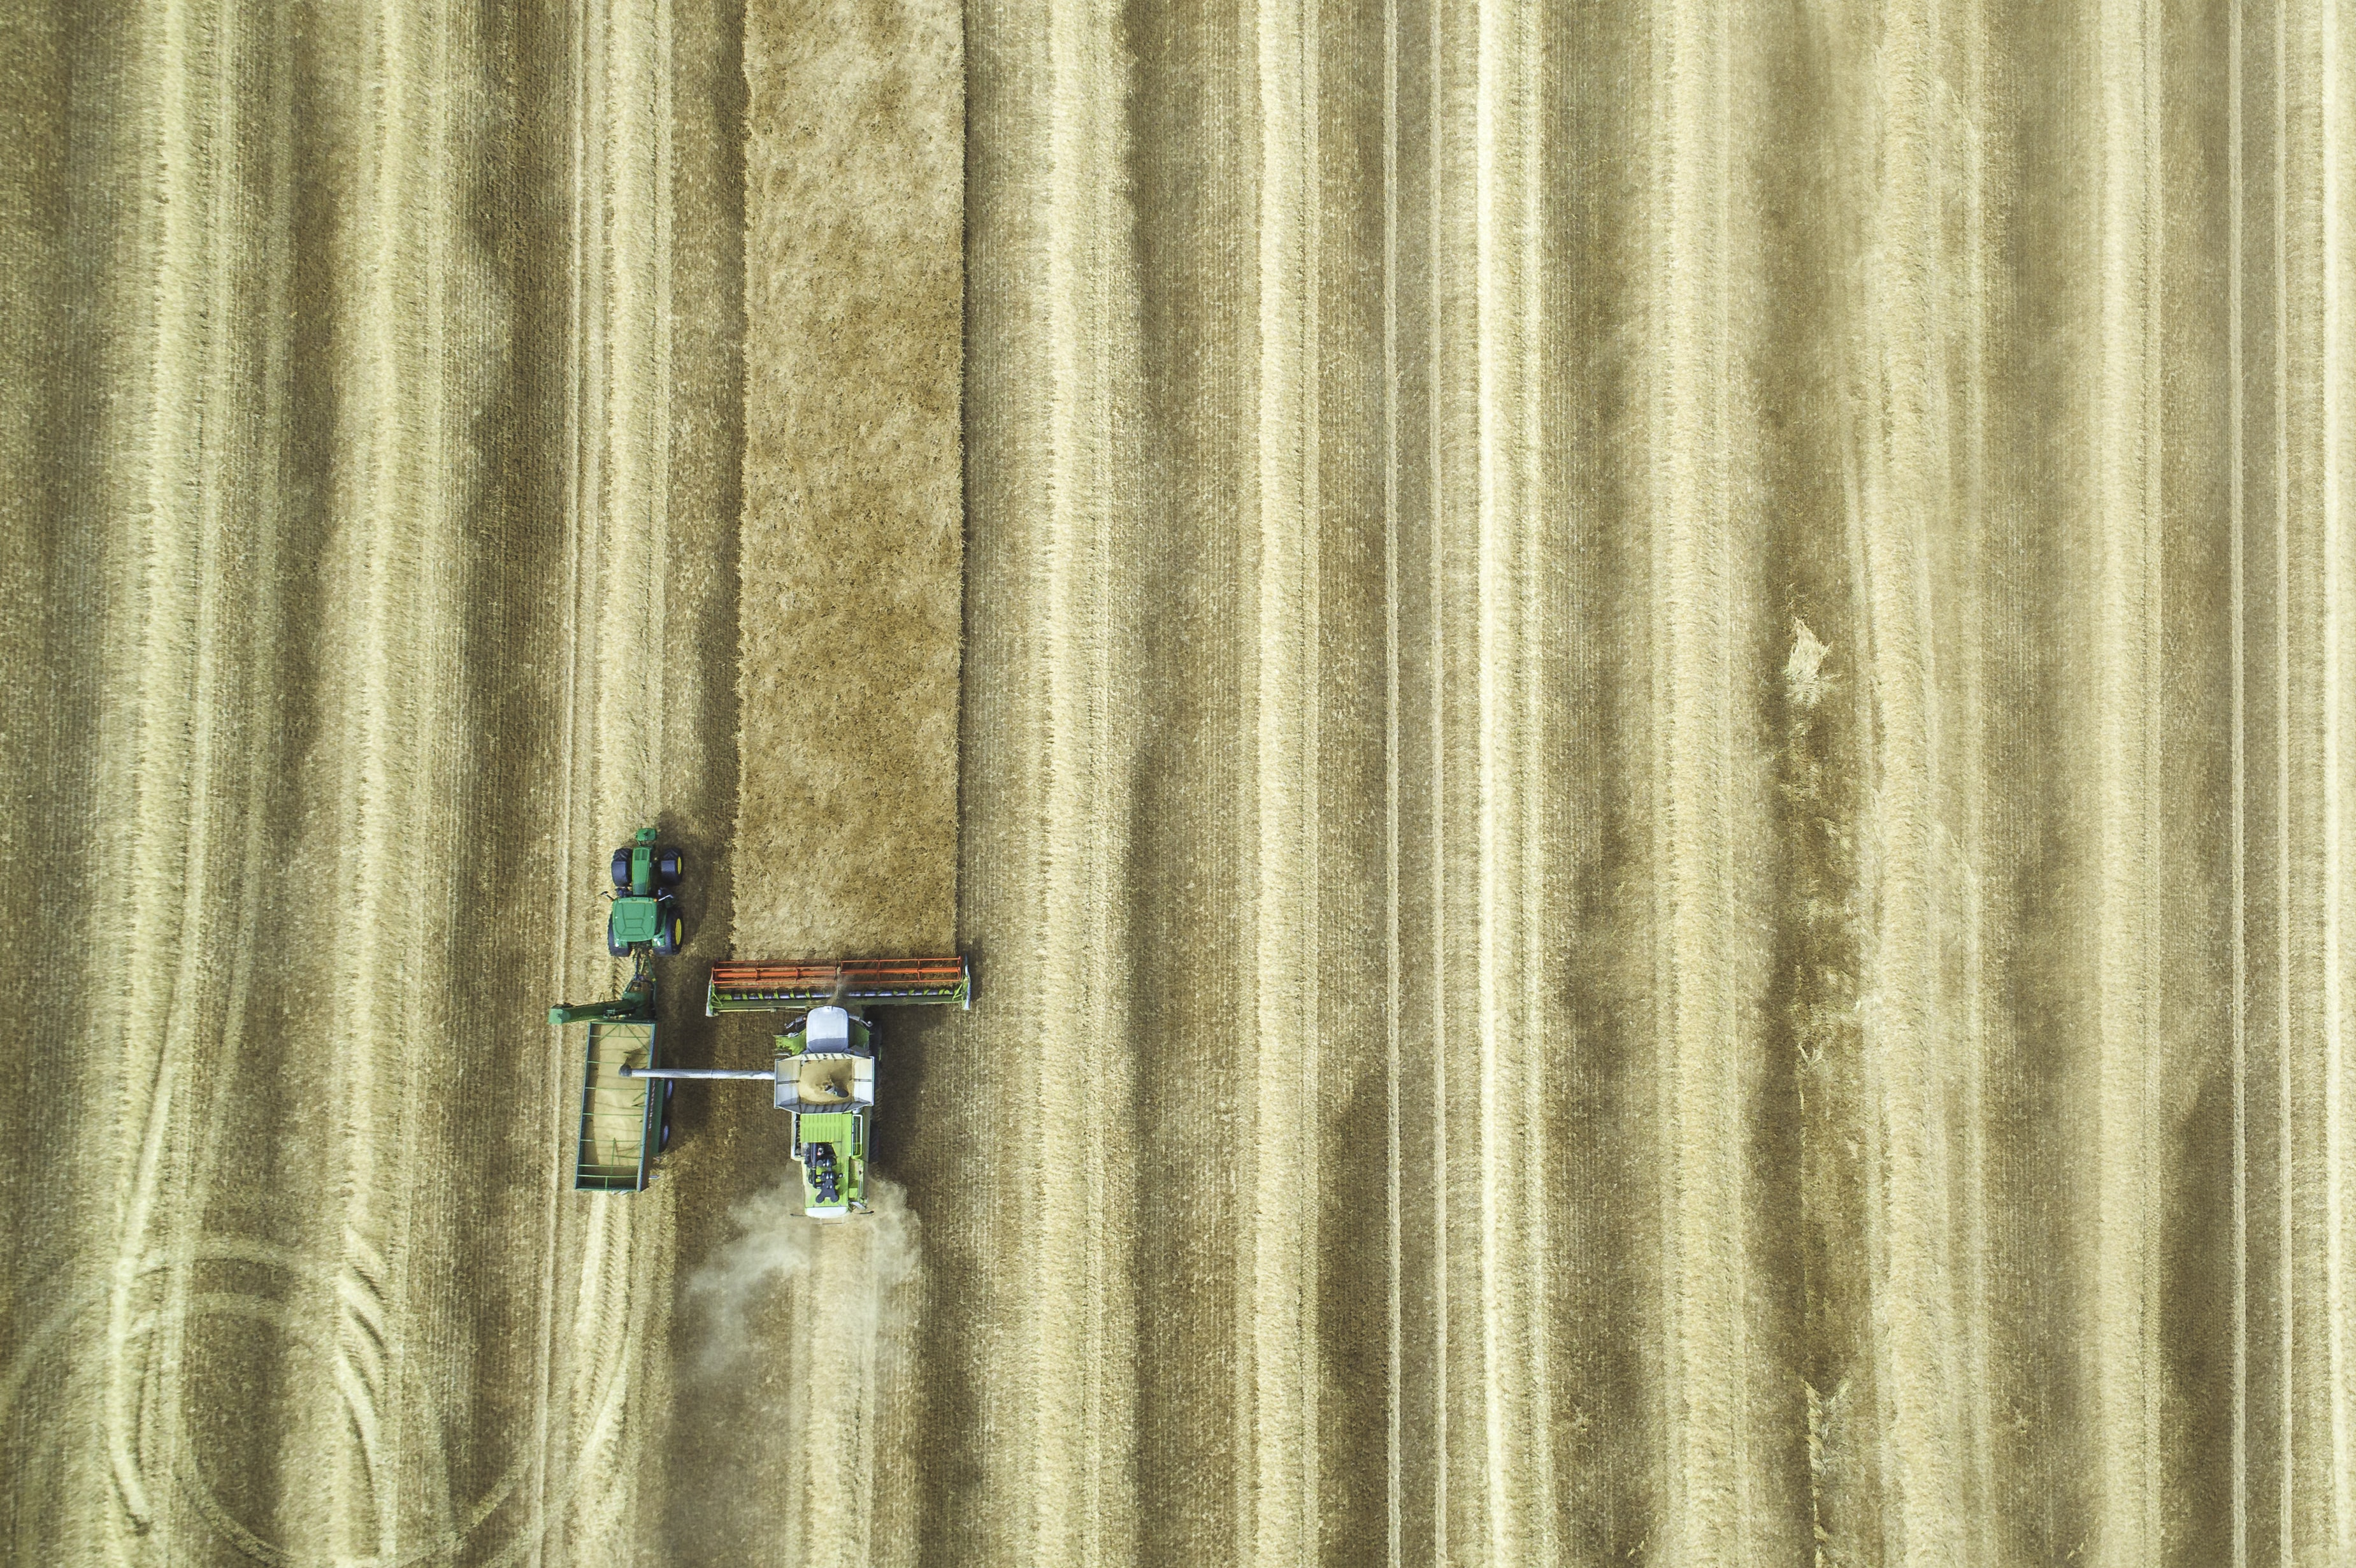 aerial view photography of tractor with disc harrow attachment on grass field